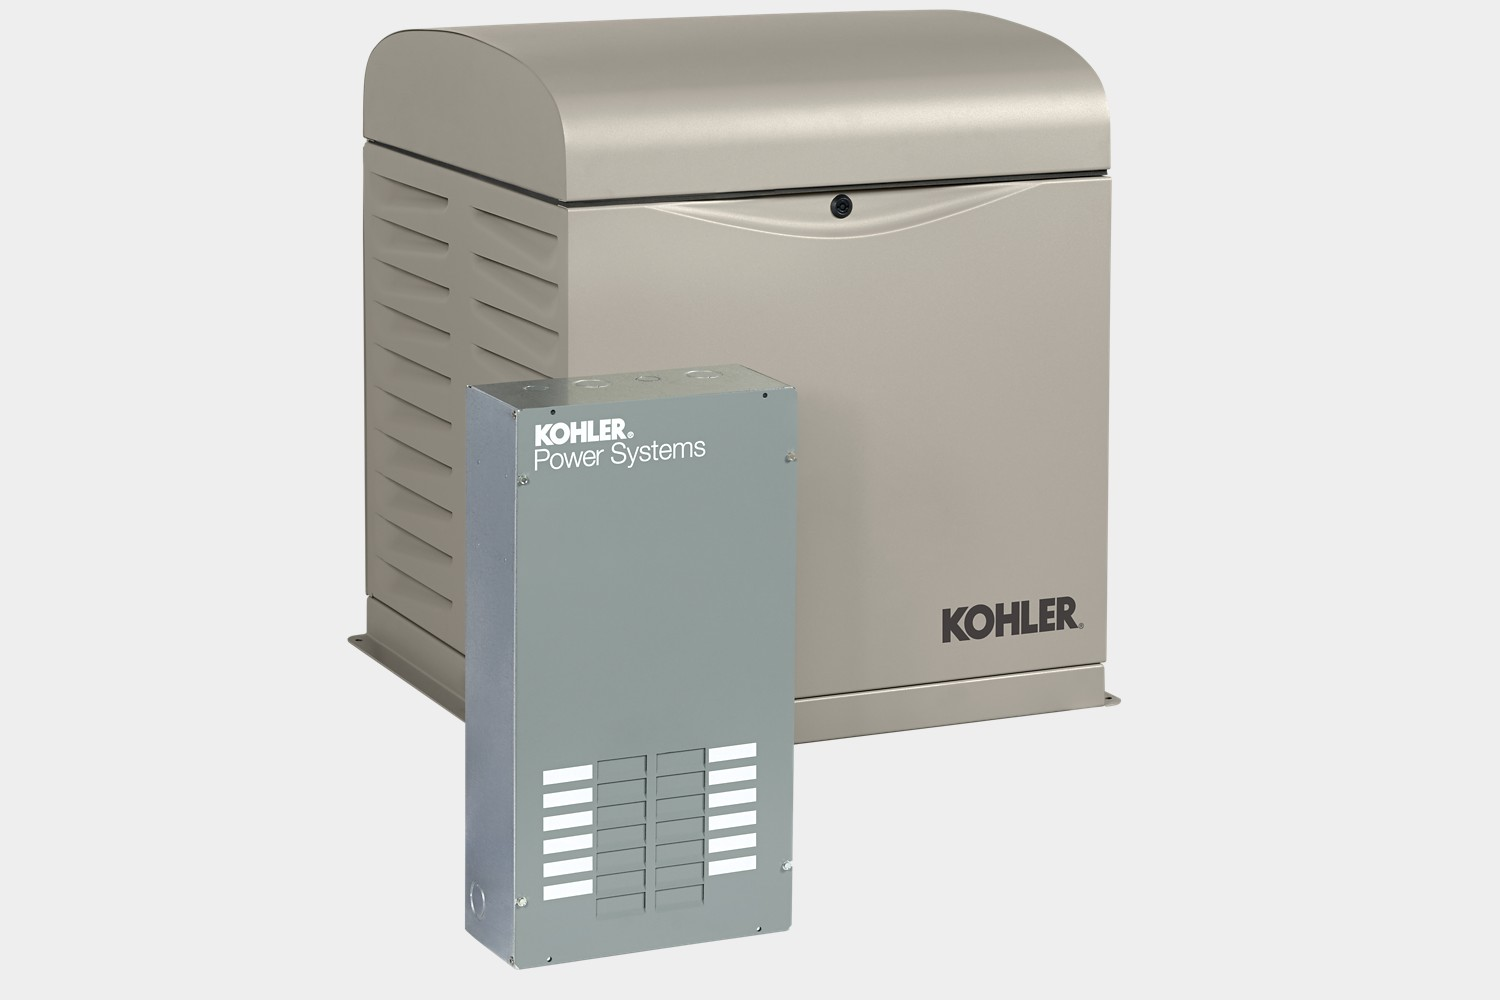 kohler generators 8resvl automatic transfer switch and 8resvl automatic transfer switch and oncue plus